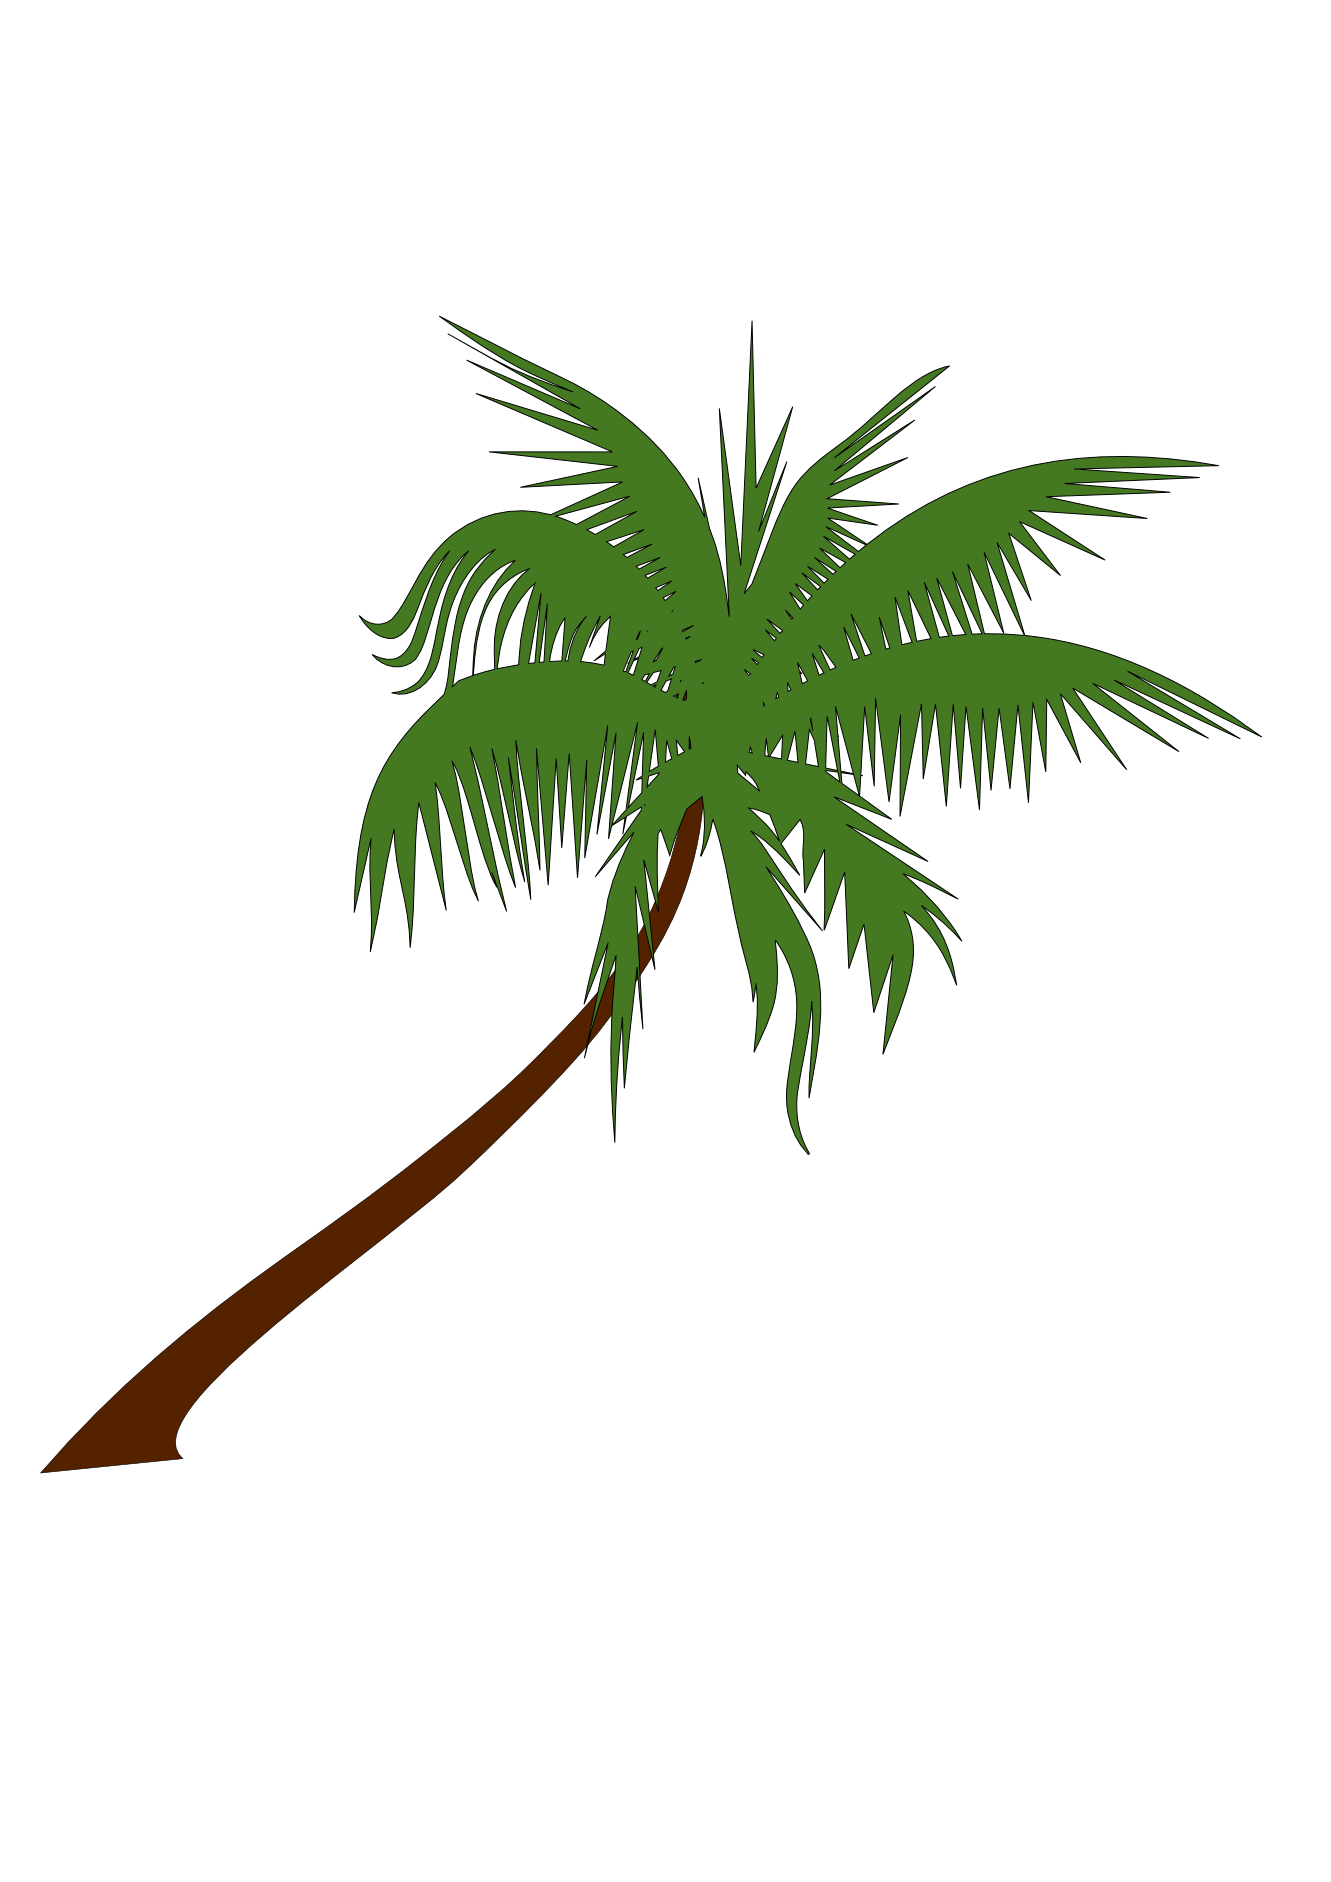 Free Palm Tree Graphic, Download Free Clip Art, Free Clip.